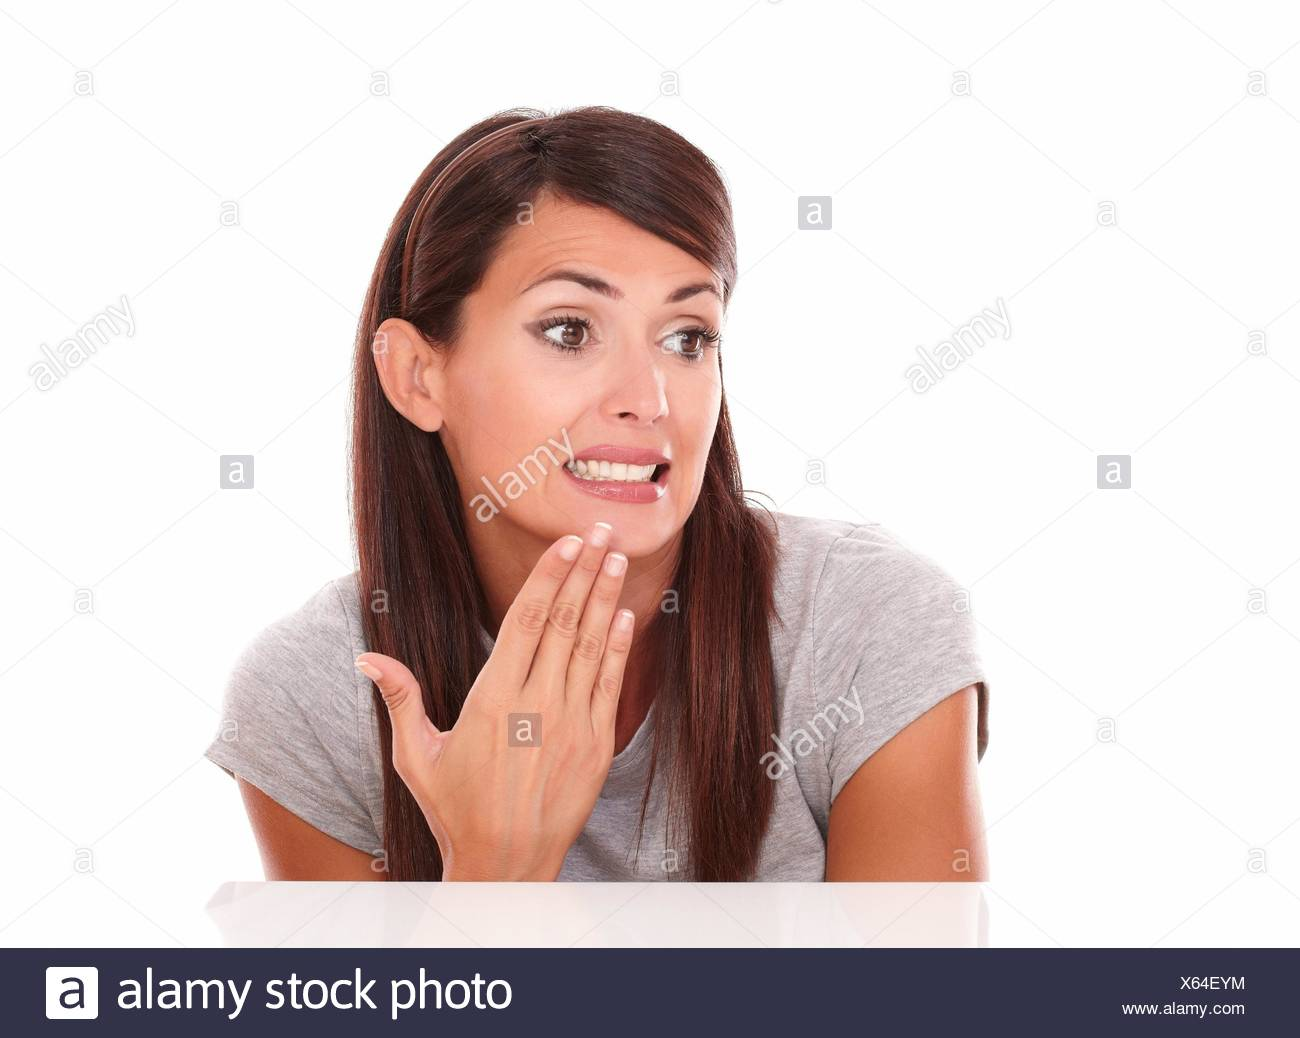 Headshot portrait of lovely latin woman with fail gesture looking to her right on isolated studio. - Stock Image